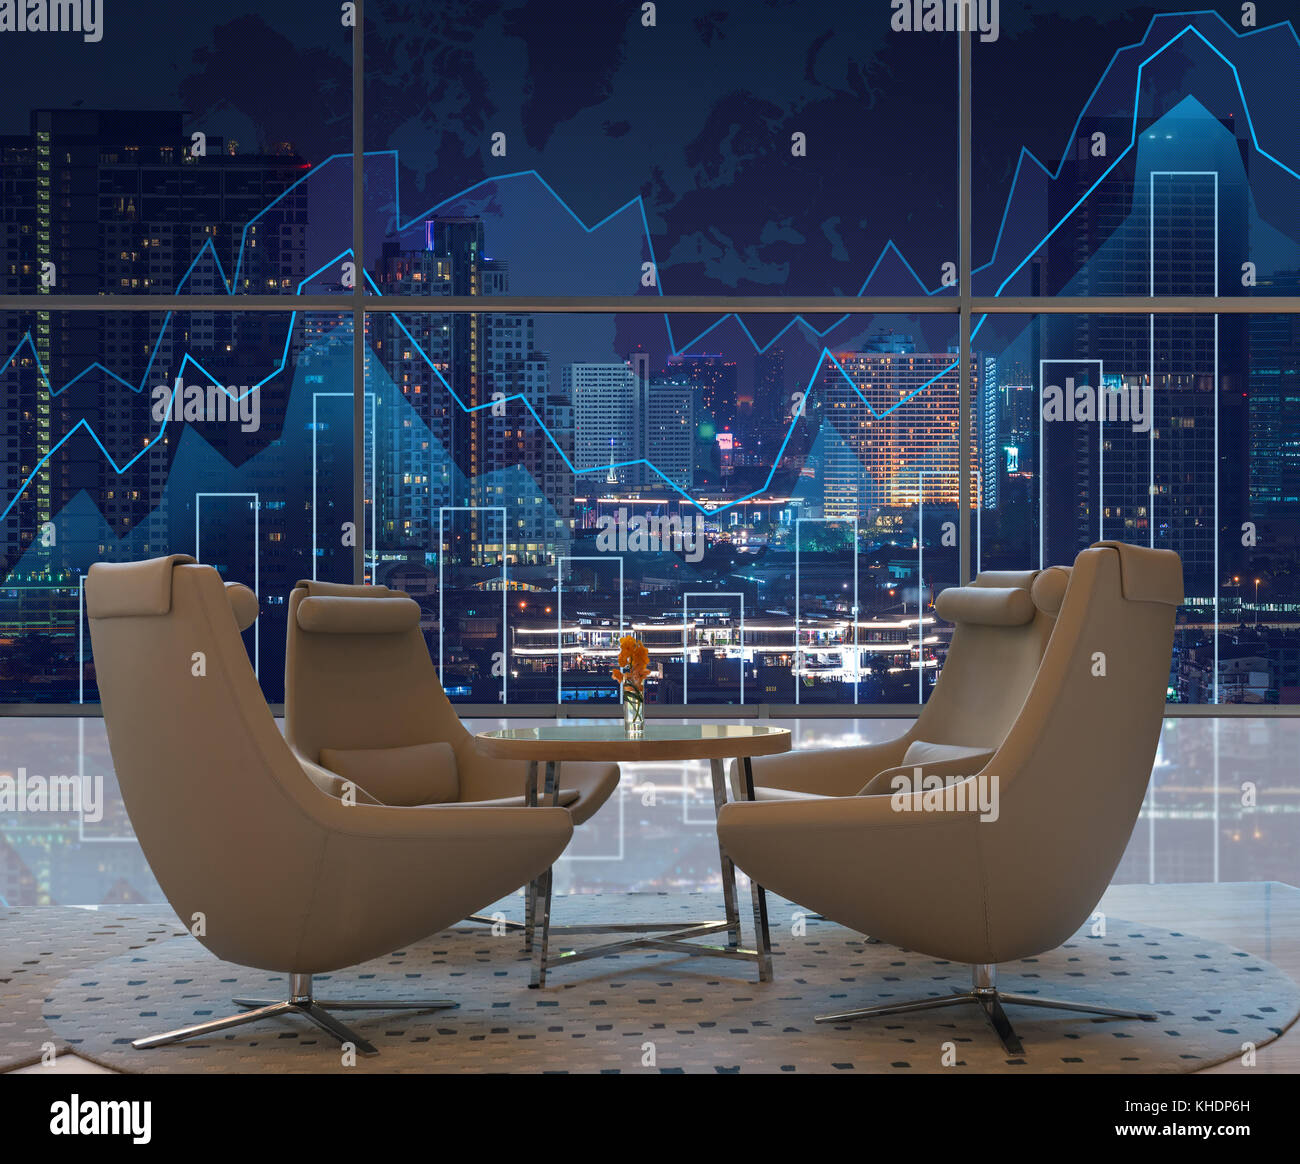 Lobby area of a hotel which can see Trading graph on the cityscape at night and world map background,Business financial - Stock Image